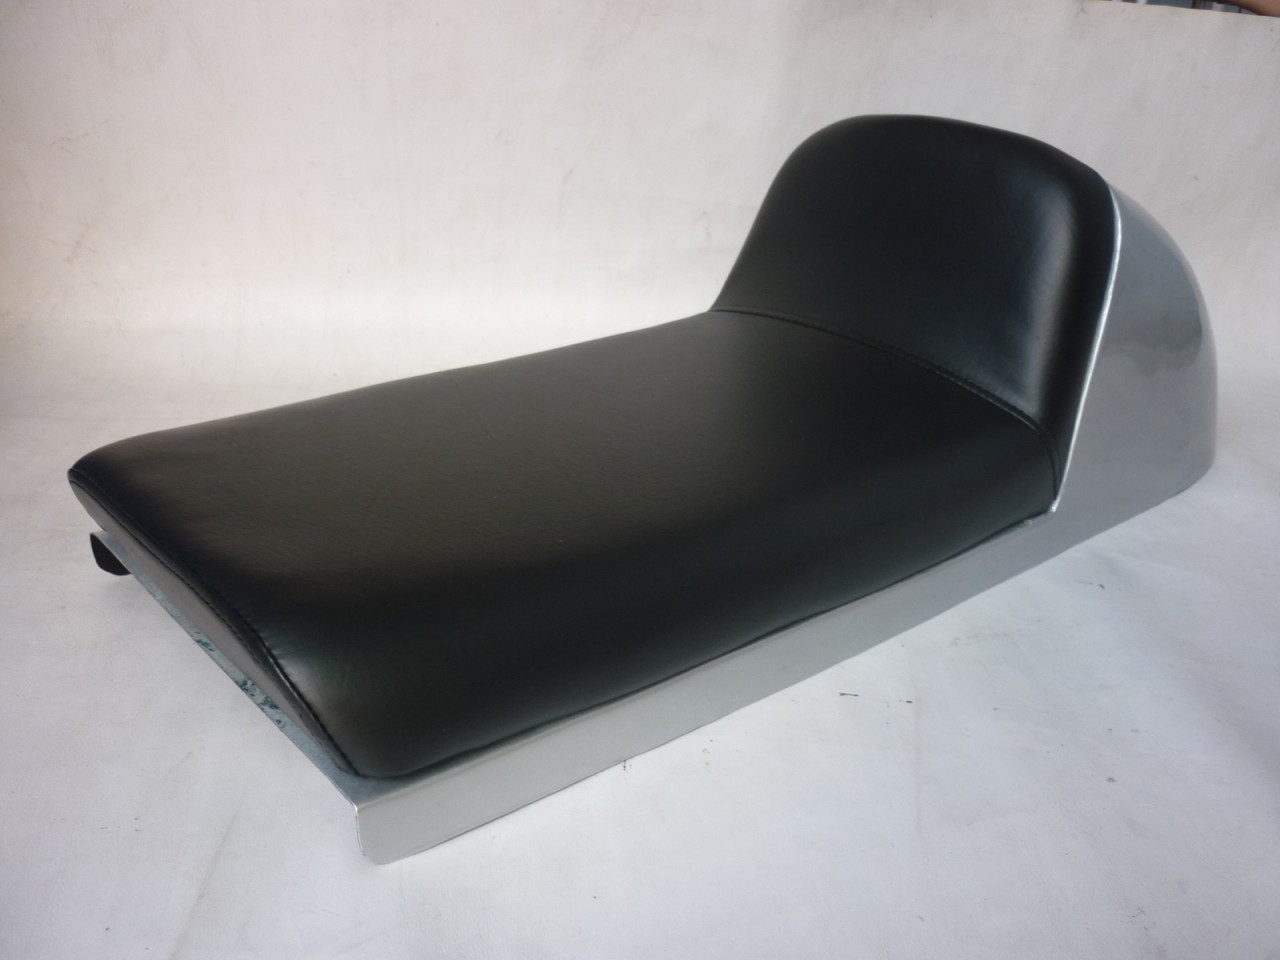 1977 - 1978 Honda CB750K CB750 K Cafe Racer Motorcycle Seat with  metal cowl #2821